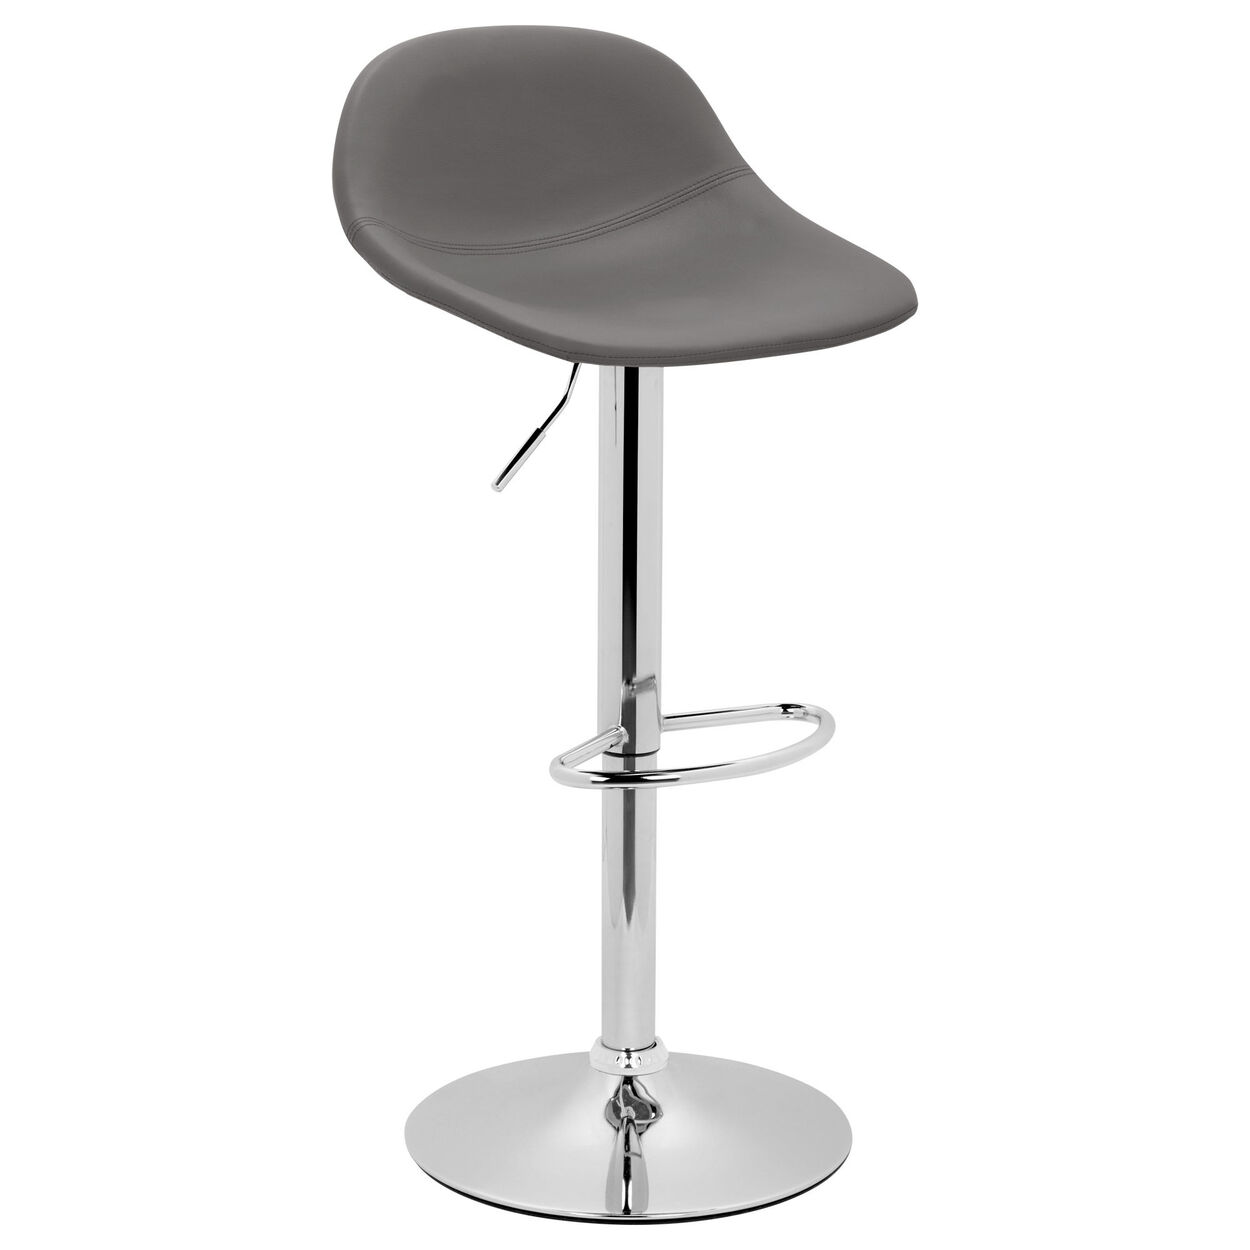 leather bar stools with arms. Faux Leather \u0026 Metal Adjustable Bar Stool Stools With Arms L